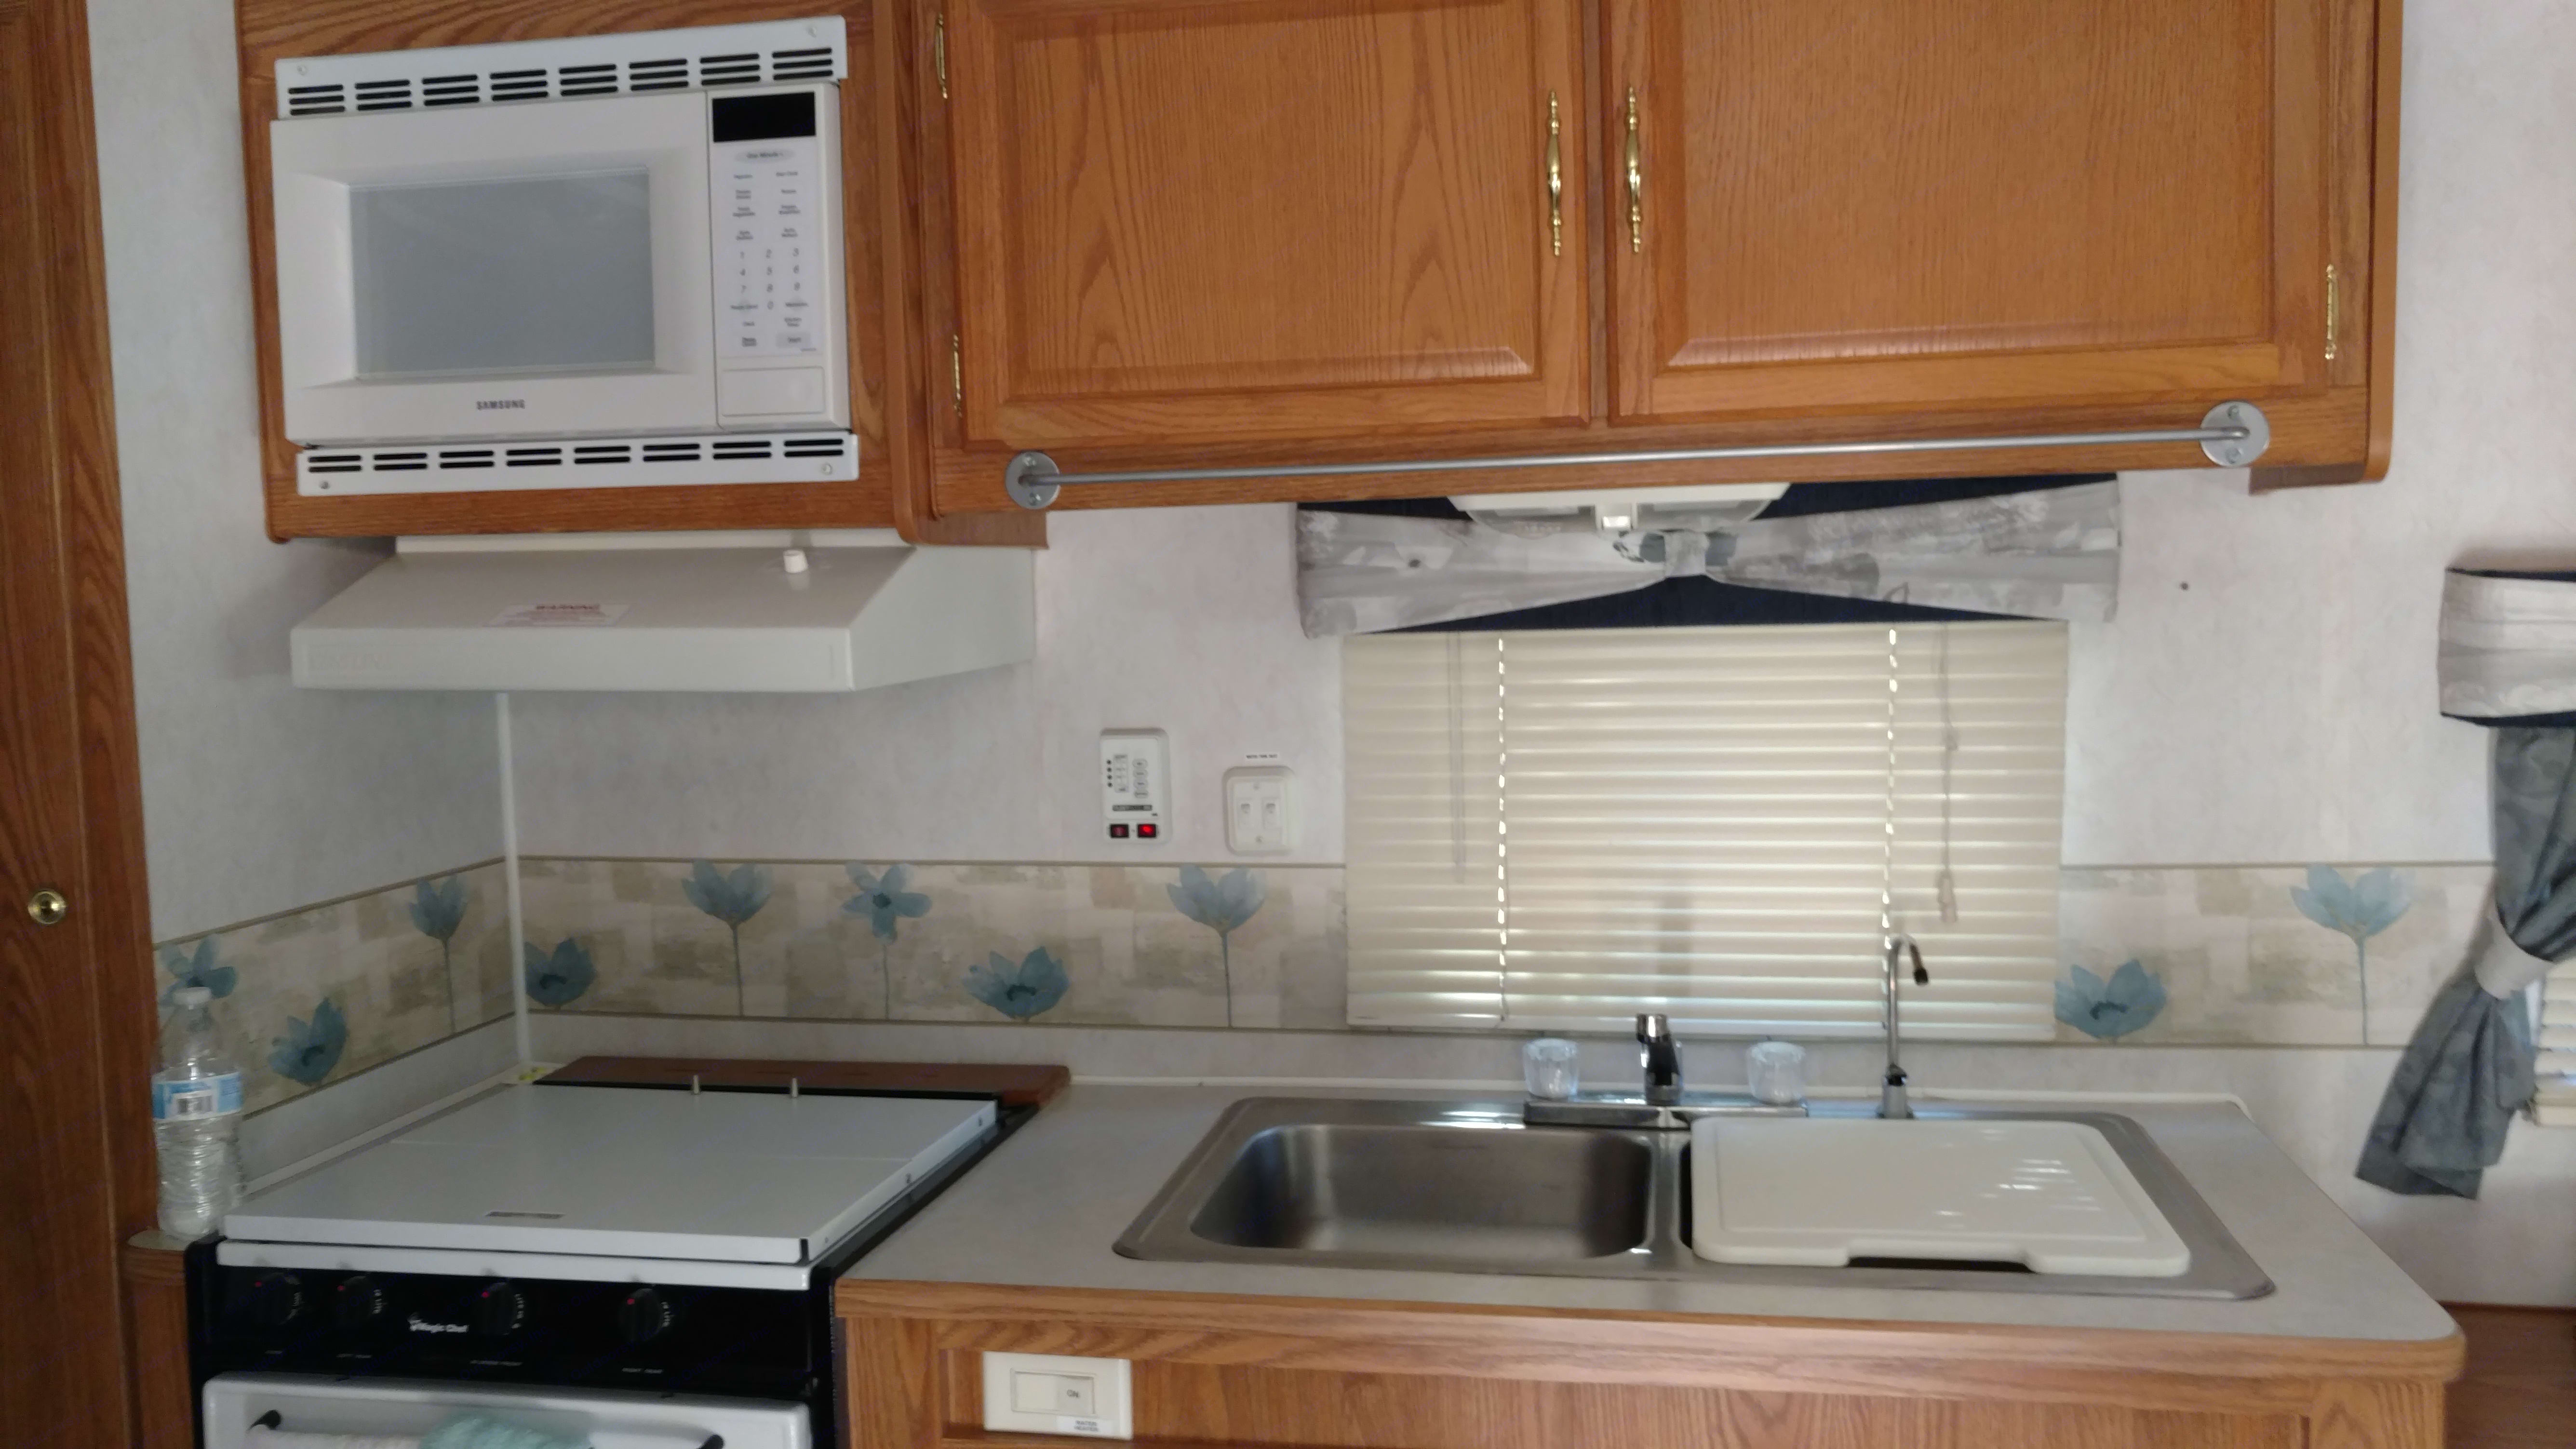 Fully functional kitchen with double sink, range top, oven, microwave, refrigerator, freezer and spacious cabinets.. Fleetwood Prowler 2002